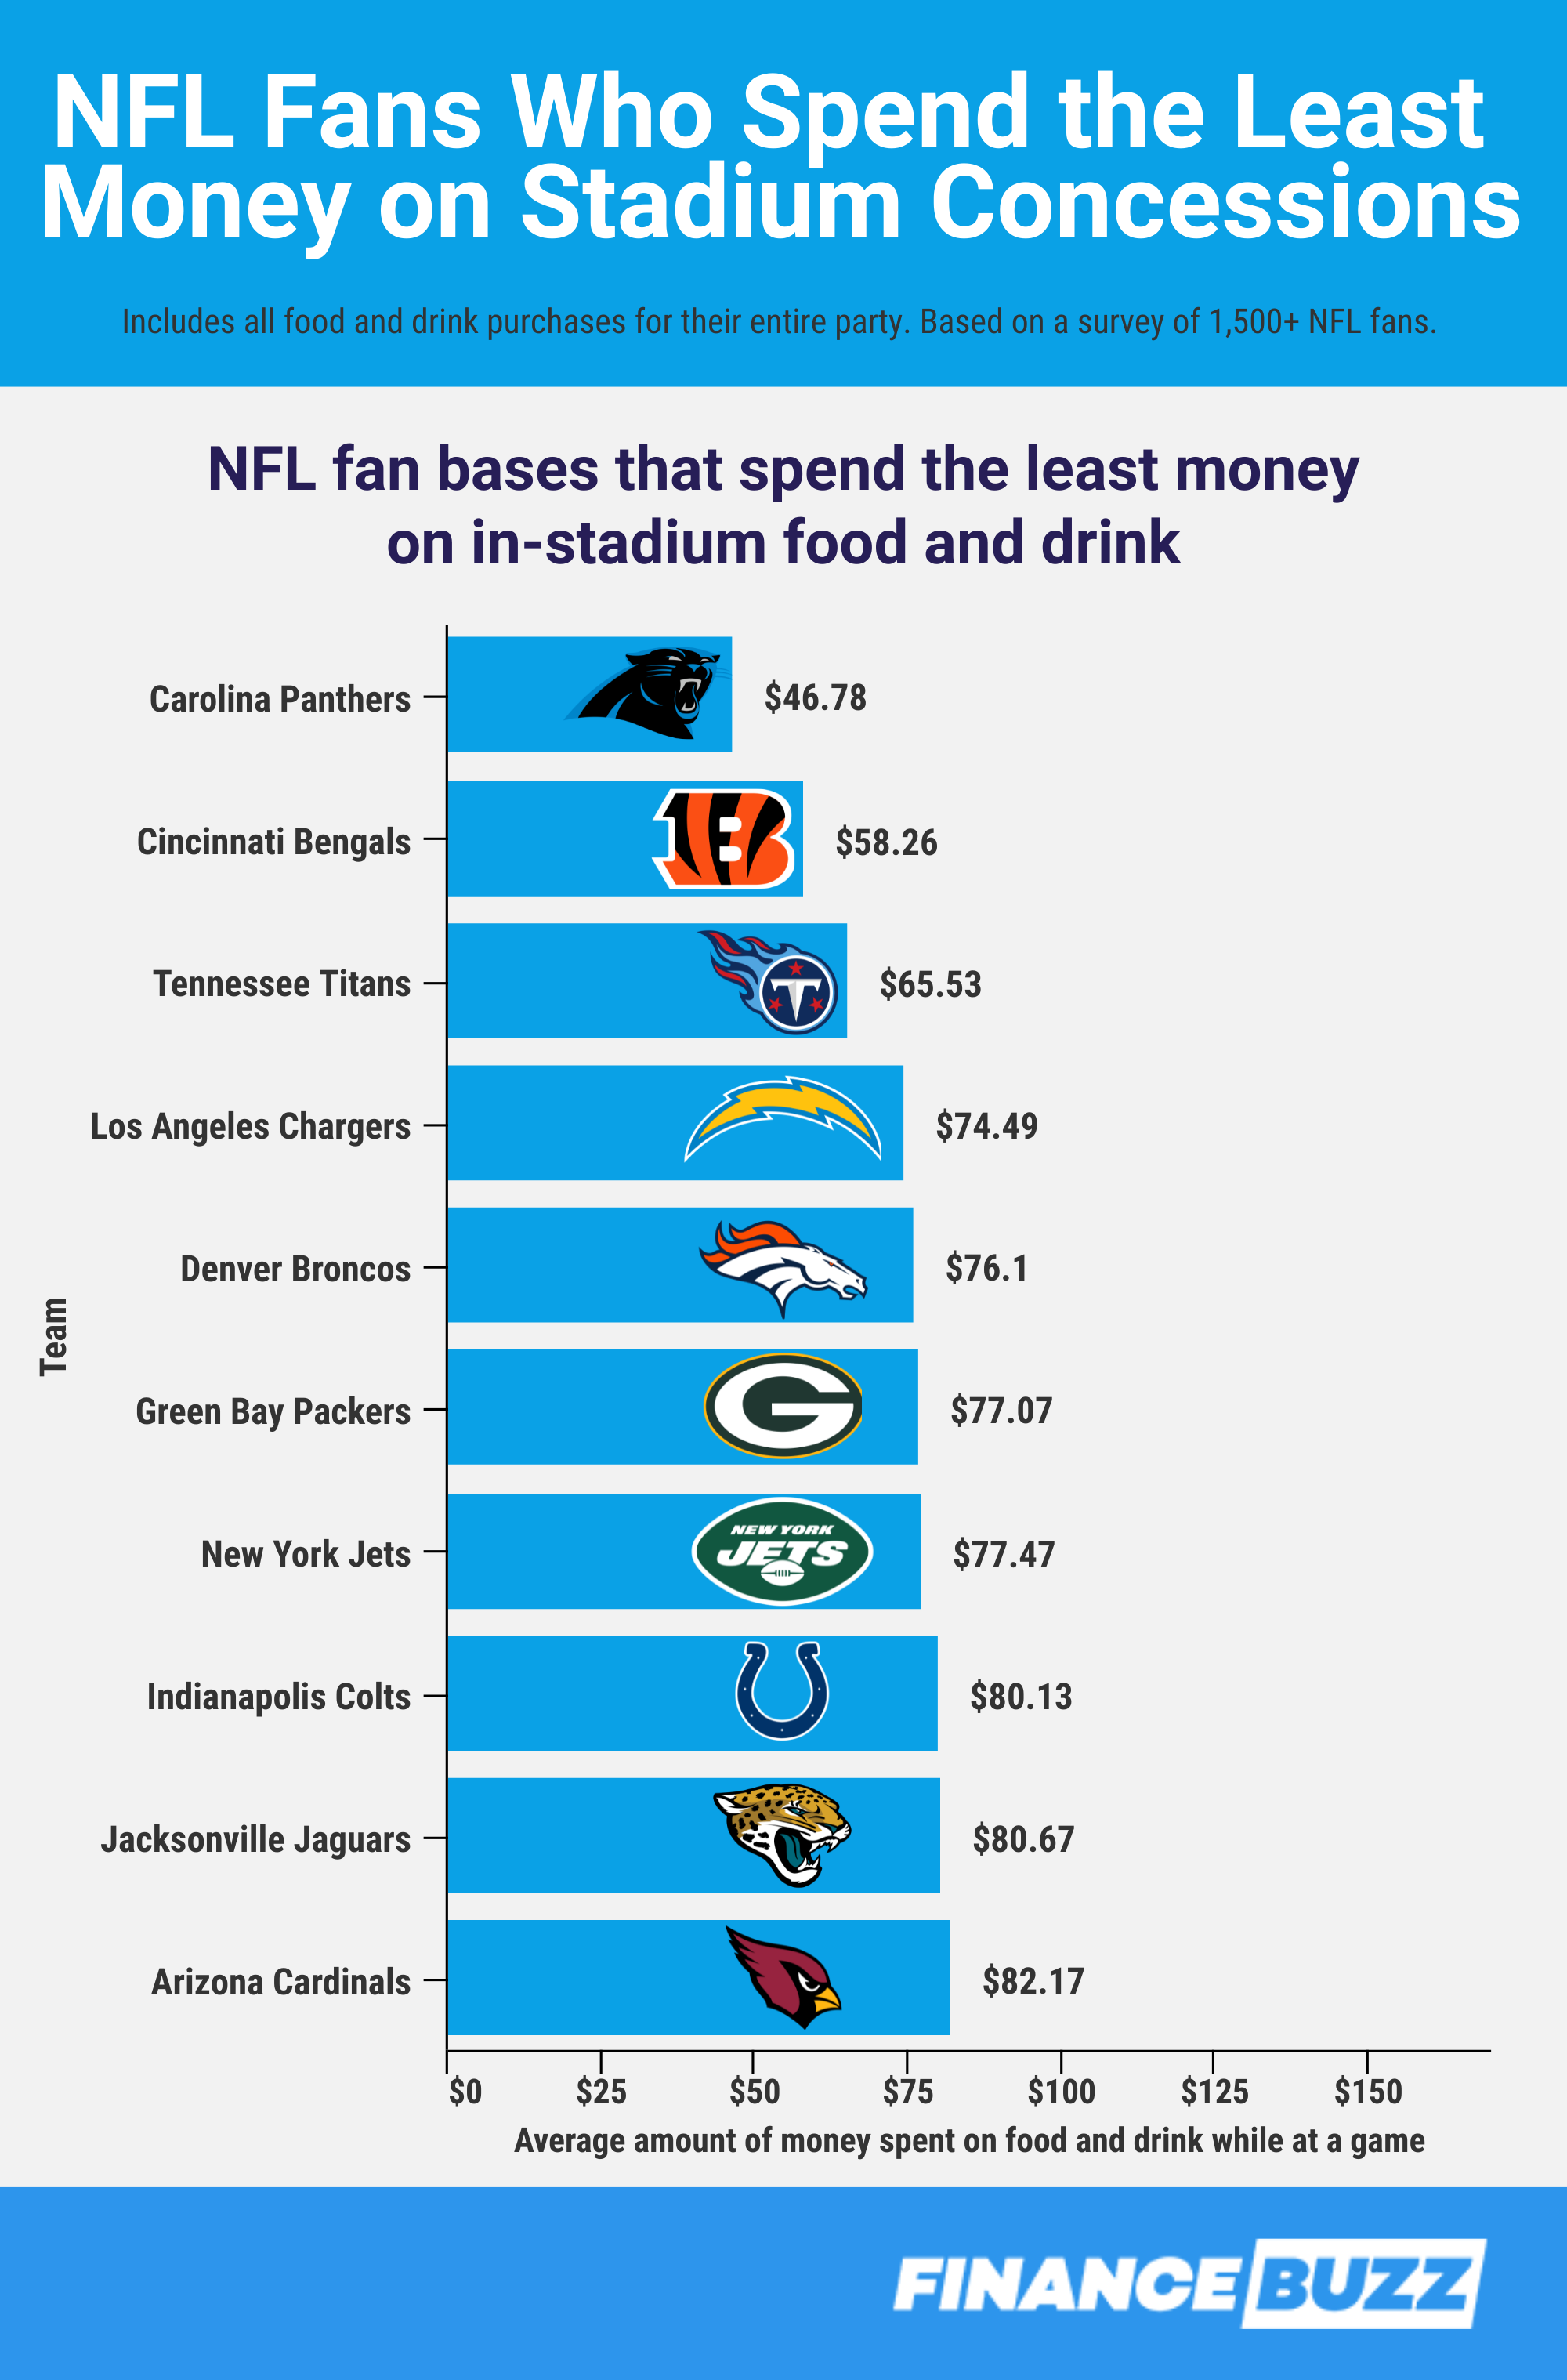 NFL fans that spend the least money on stadium concessions